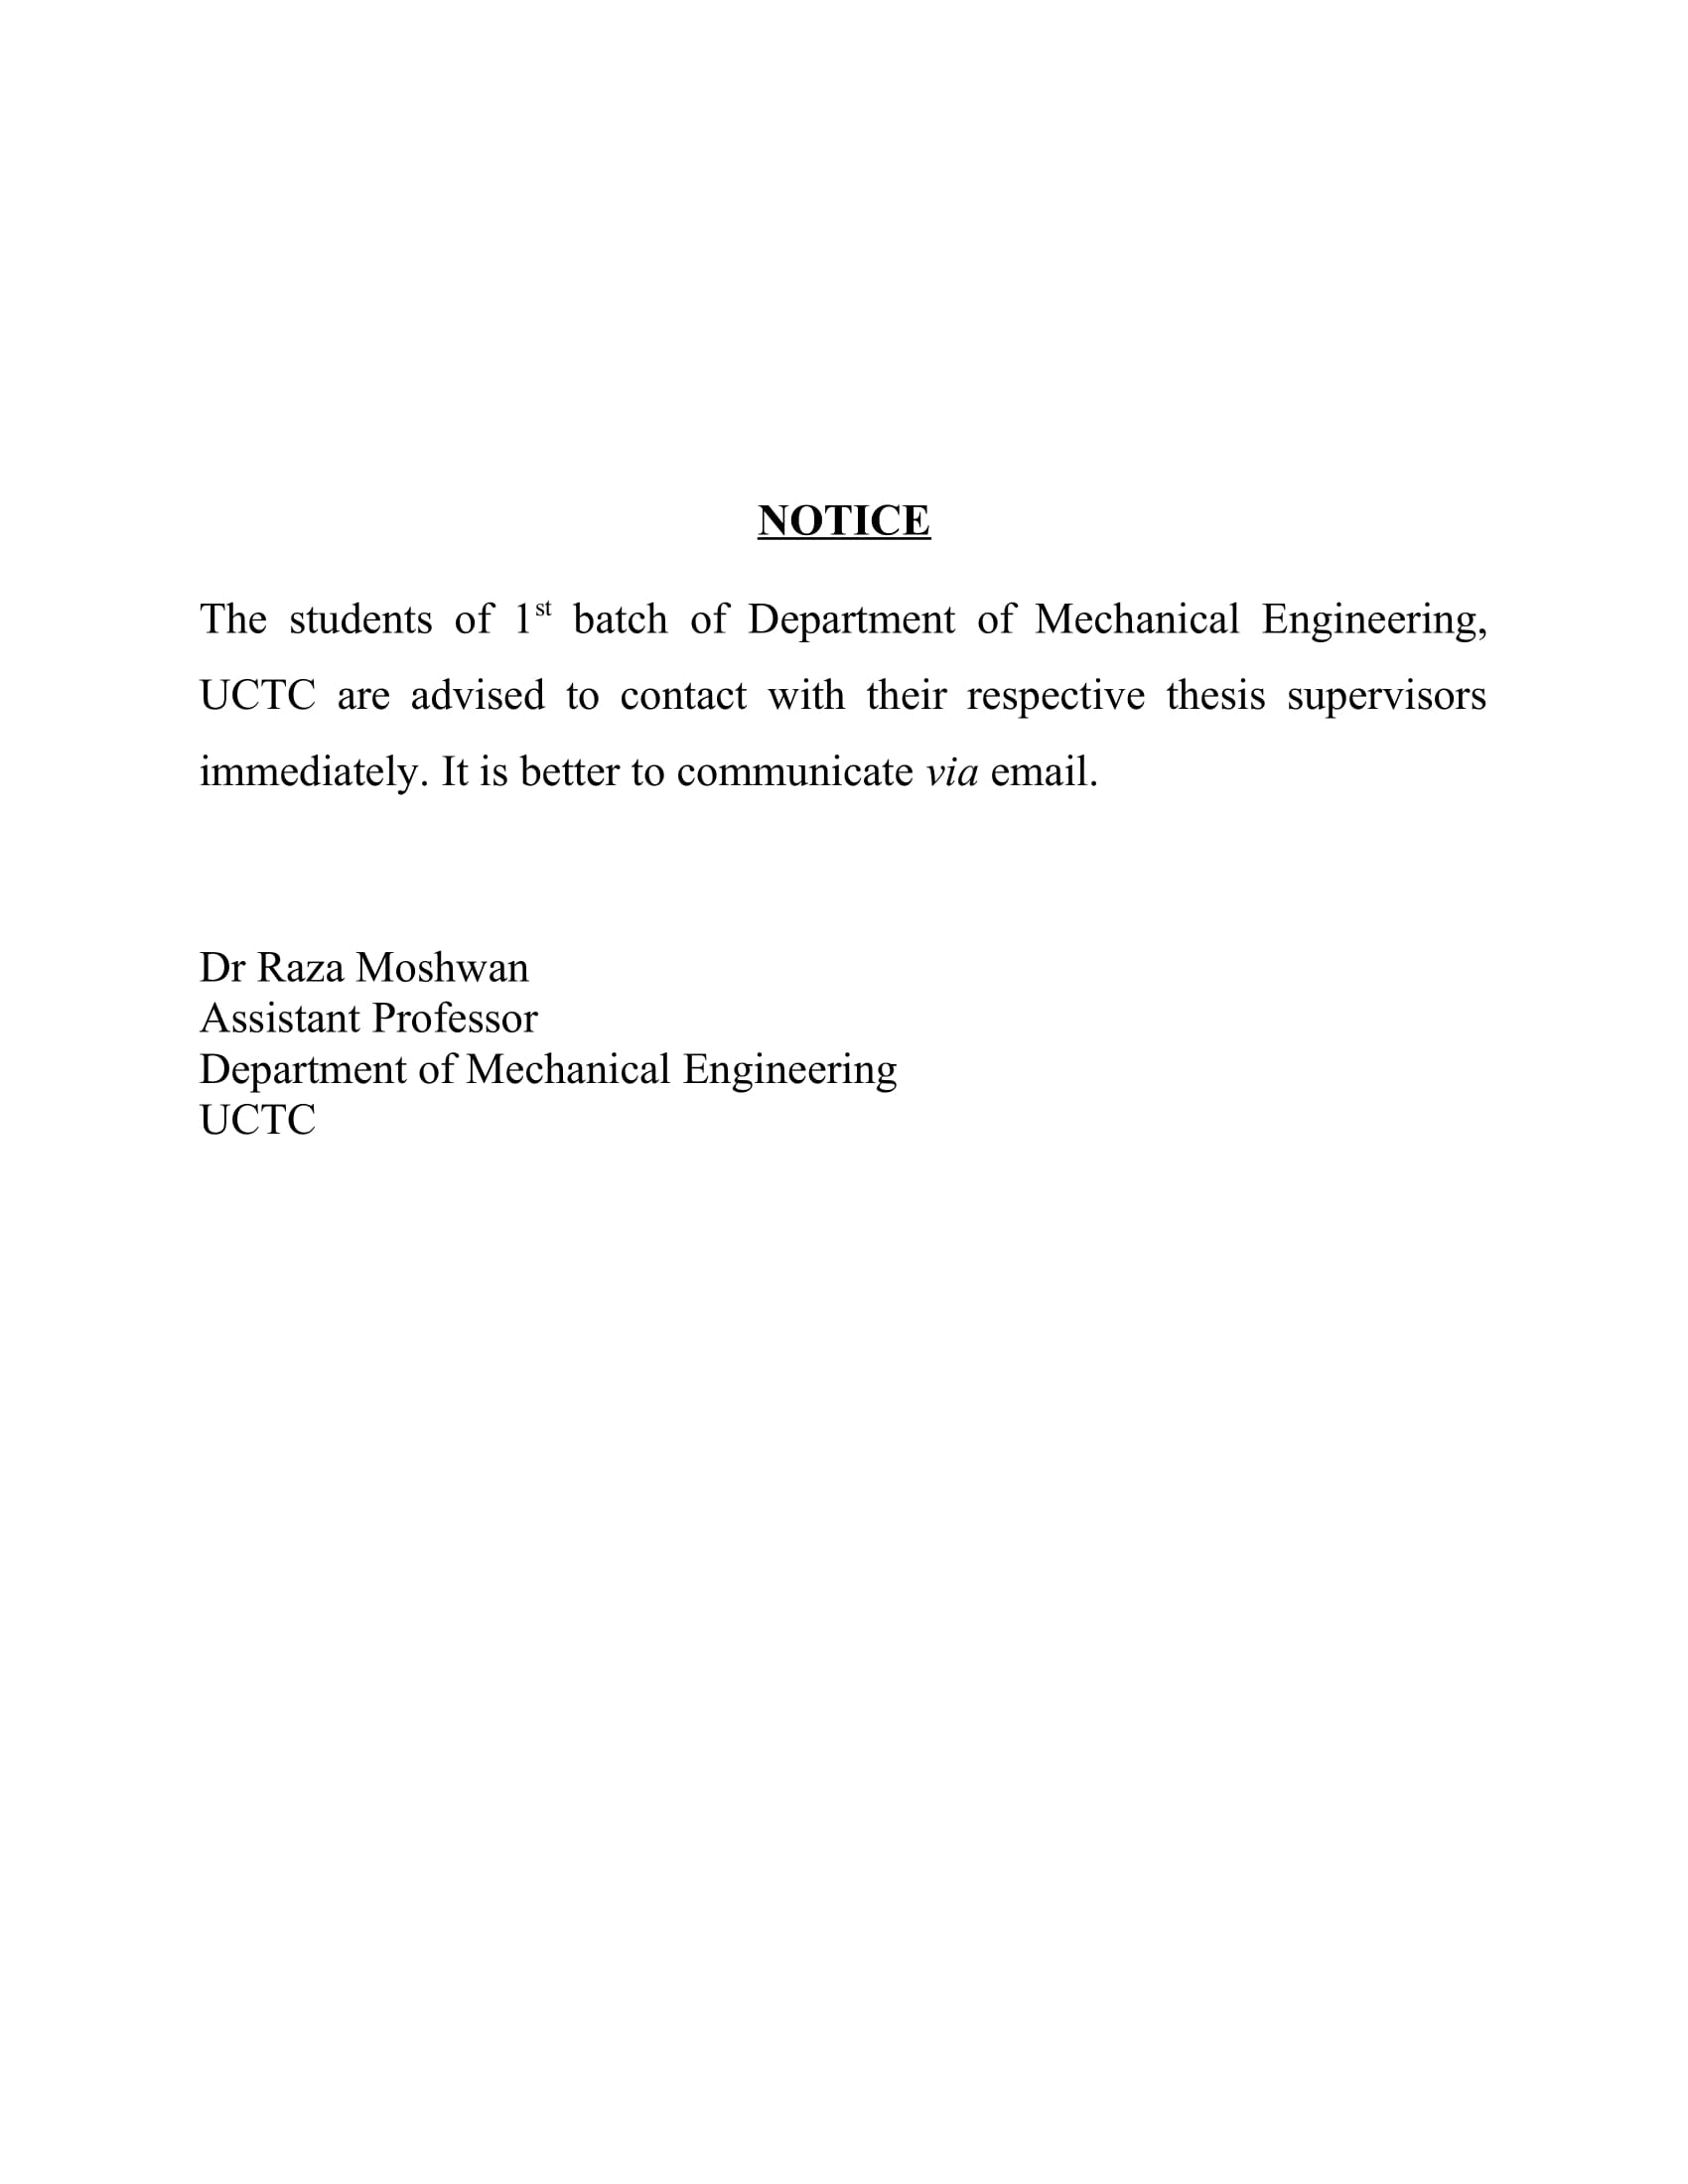 Notice for 1st Batch, Mechanical Engineering